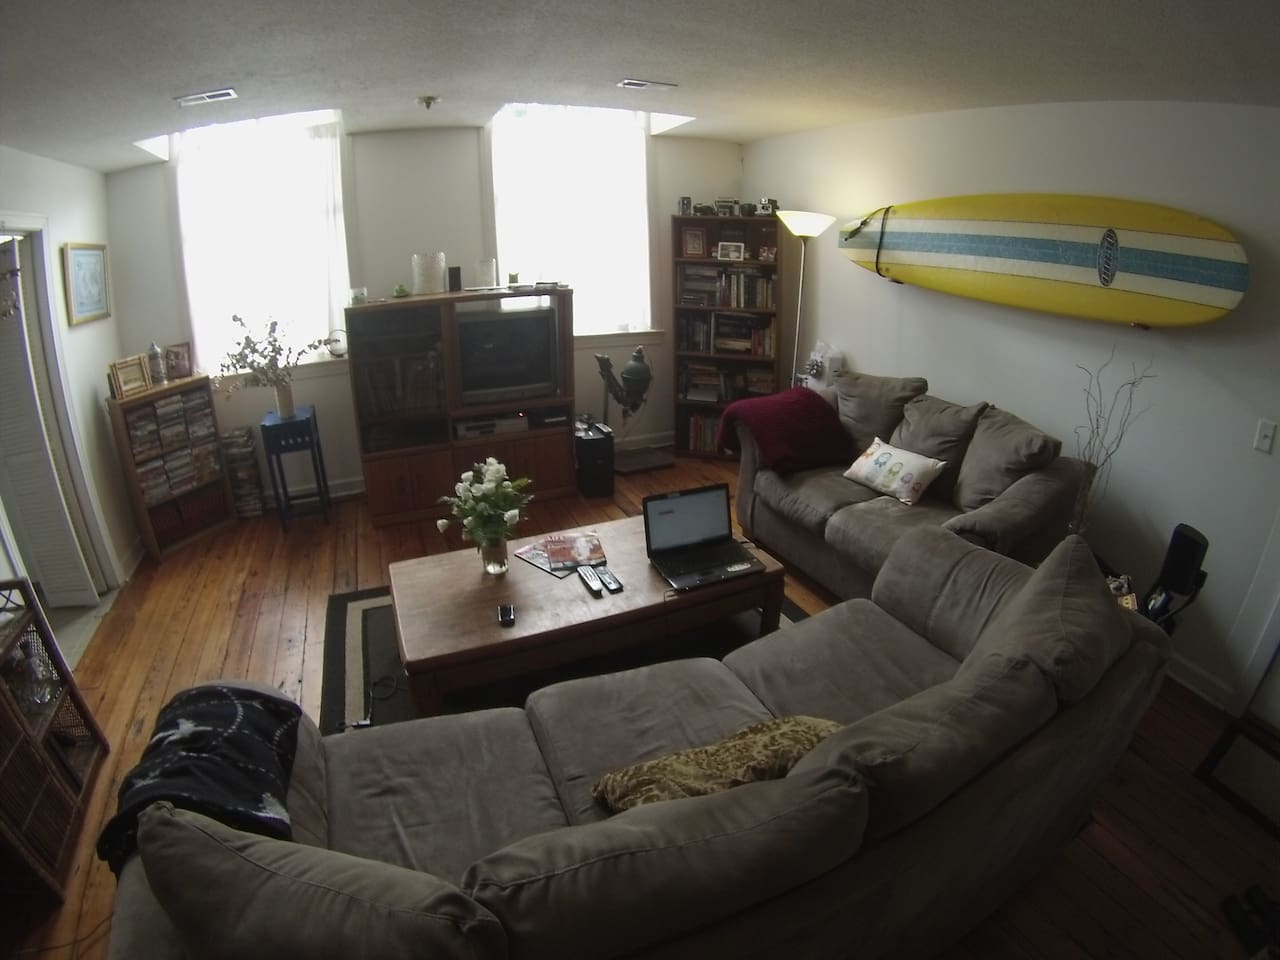 living room with laptop, dvd player, netflix and hulu account and record player